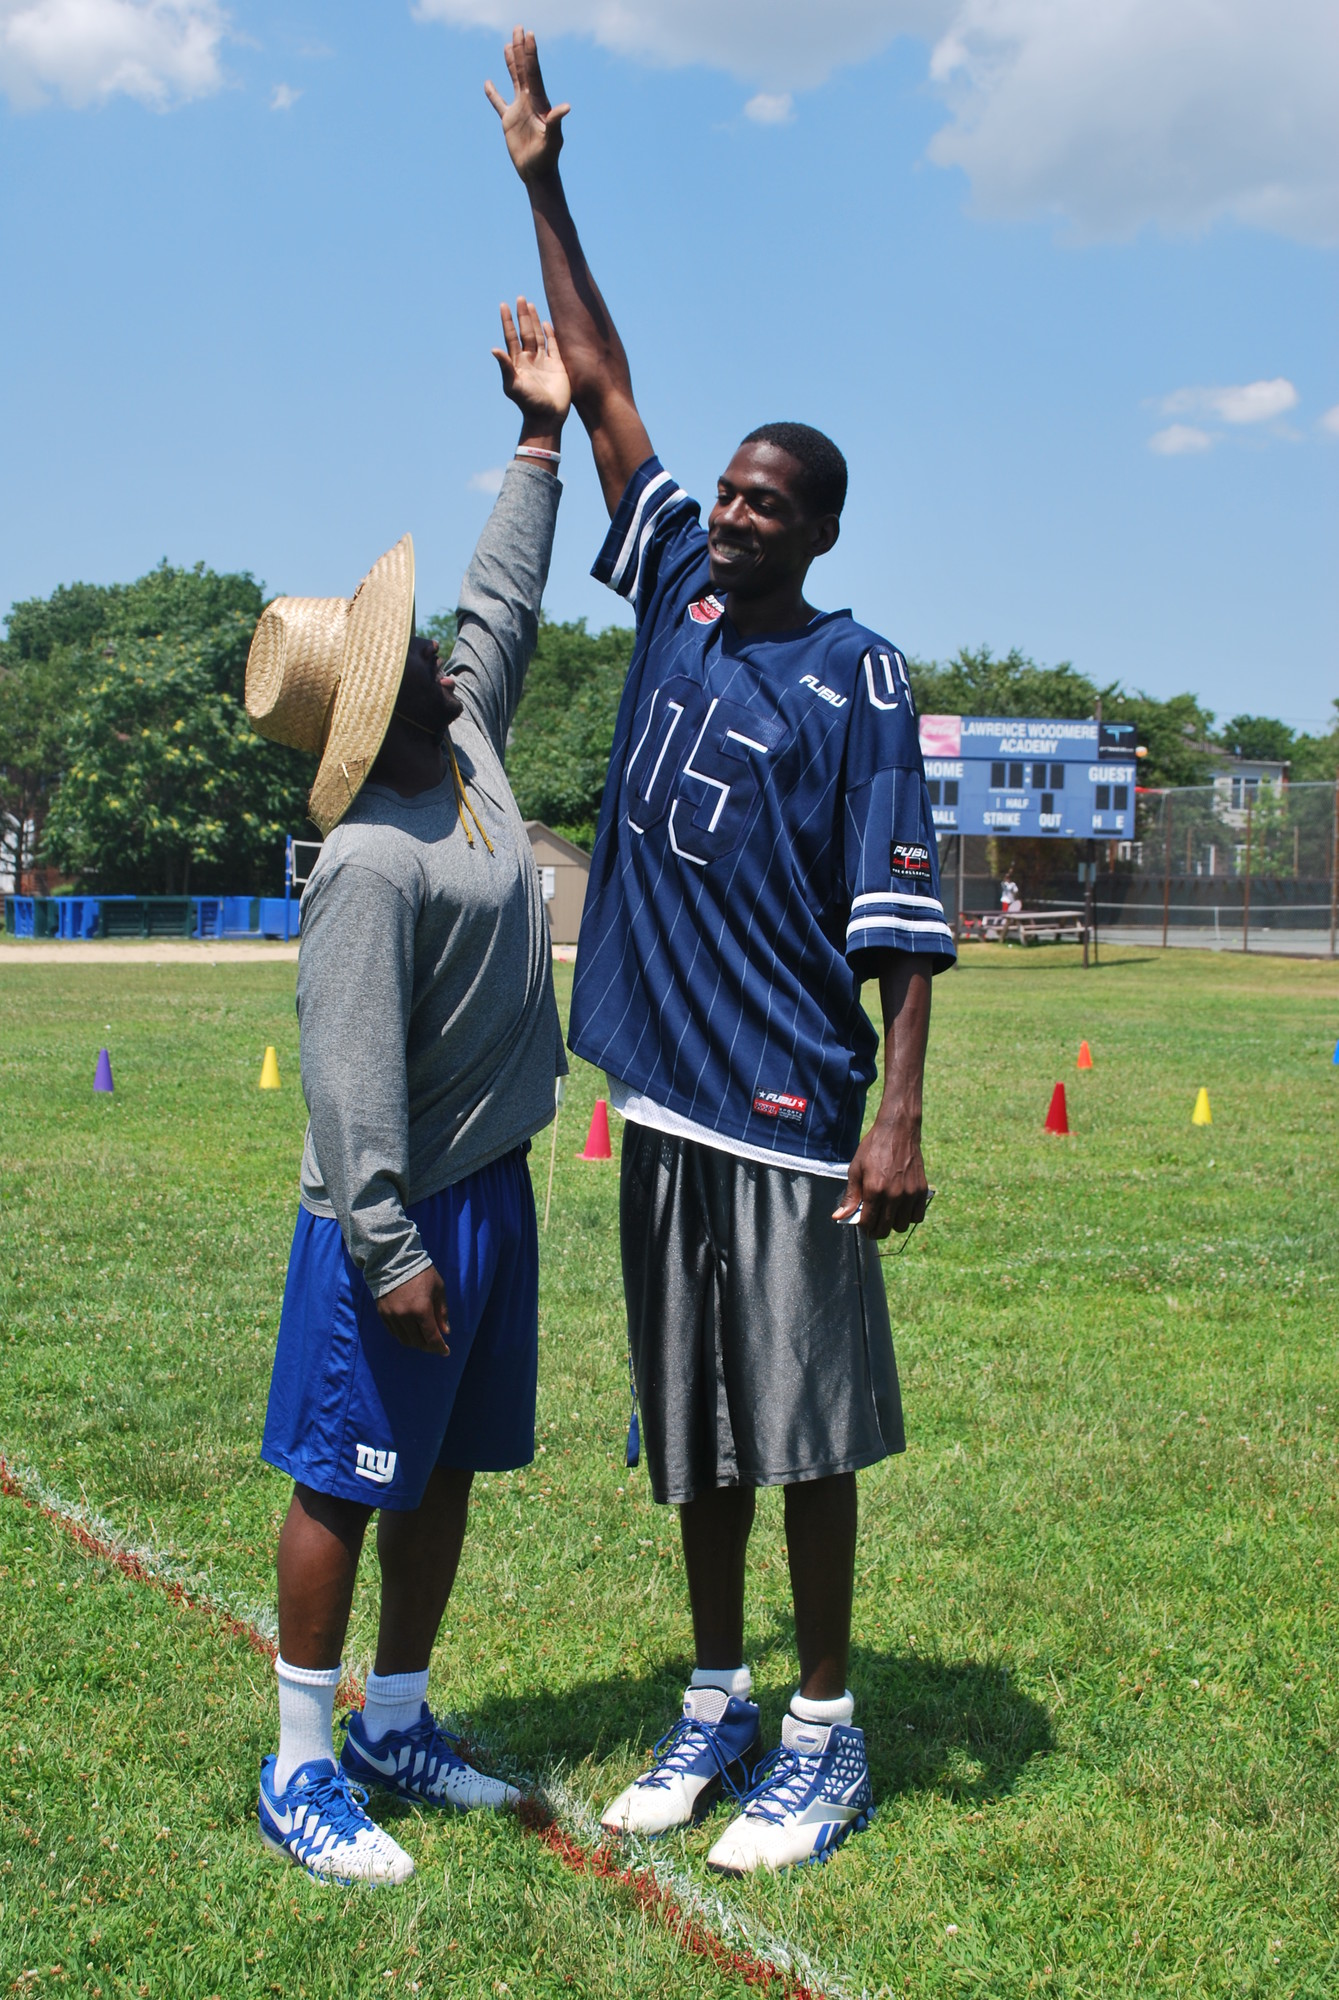 The long and short of it at Lawrence Woodmere Academy's summer camp. Karim Shabazz, right, outstretched Prince Amukamara.